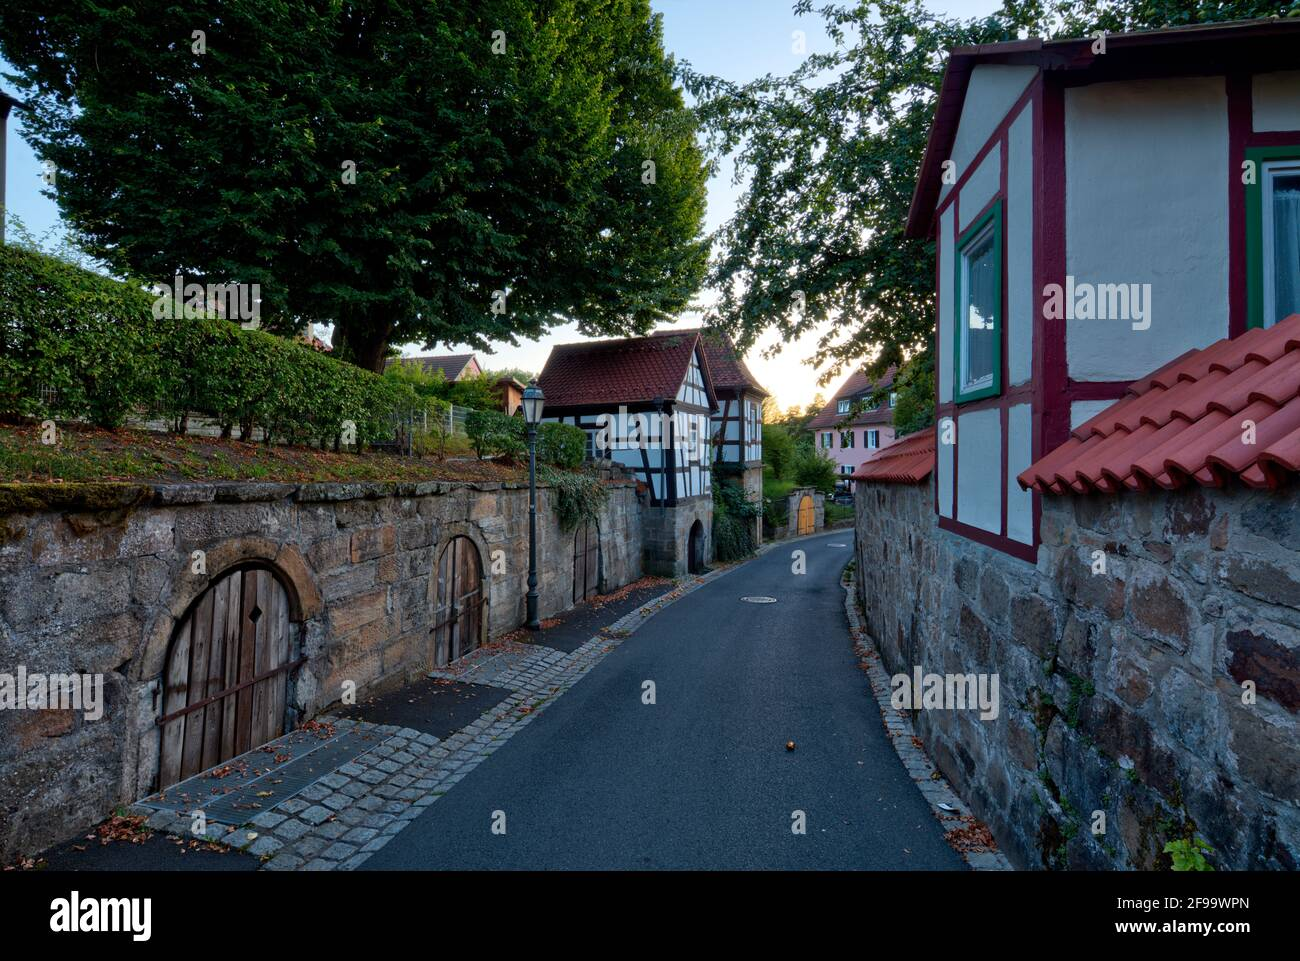 City wall, city fortifications, cellar house, facade, half-timbered, alley, architecture, Haßberge, Ebern, Franconia, Bavaria, Germany, Europe Stock Photo